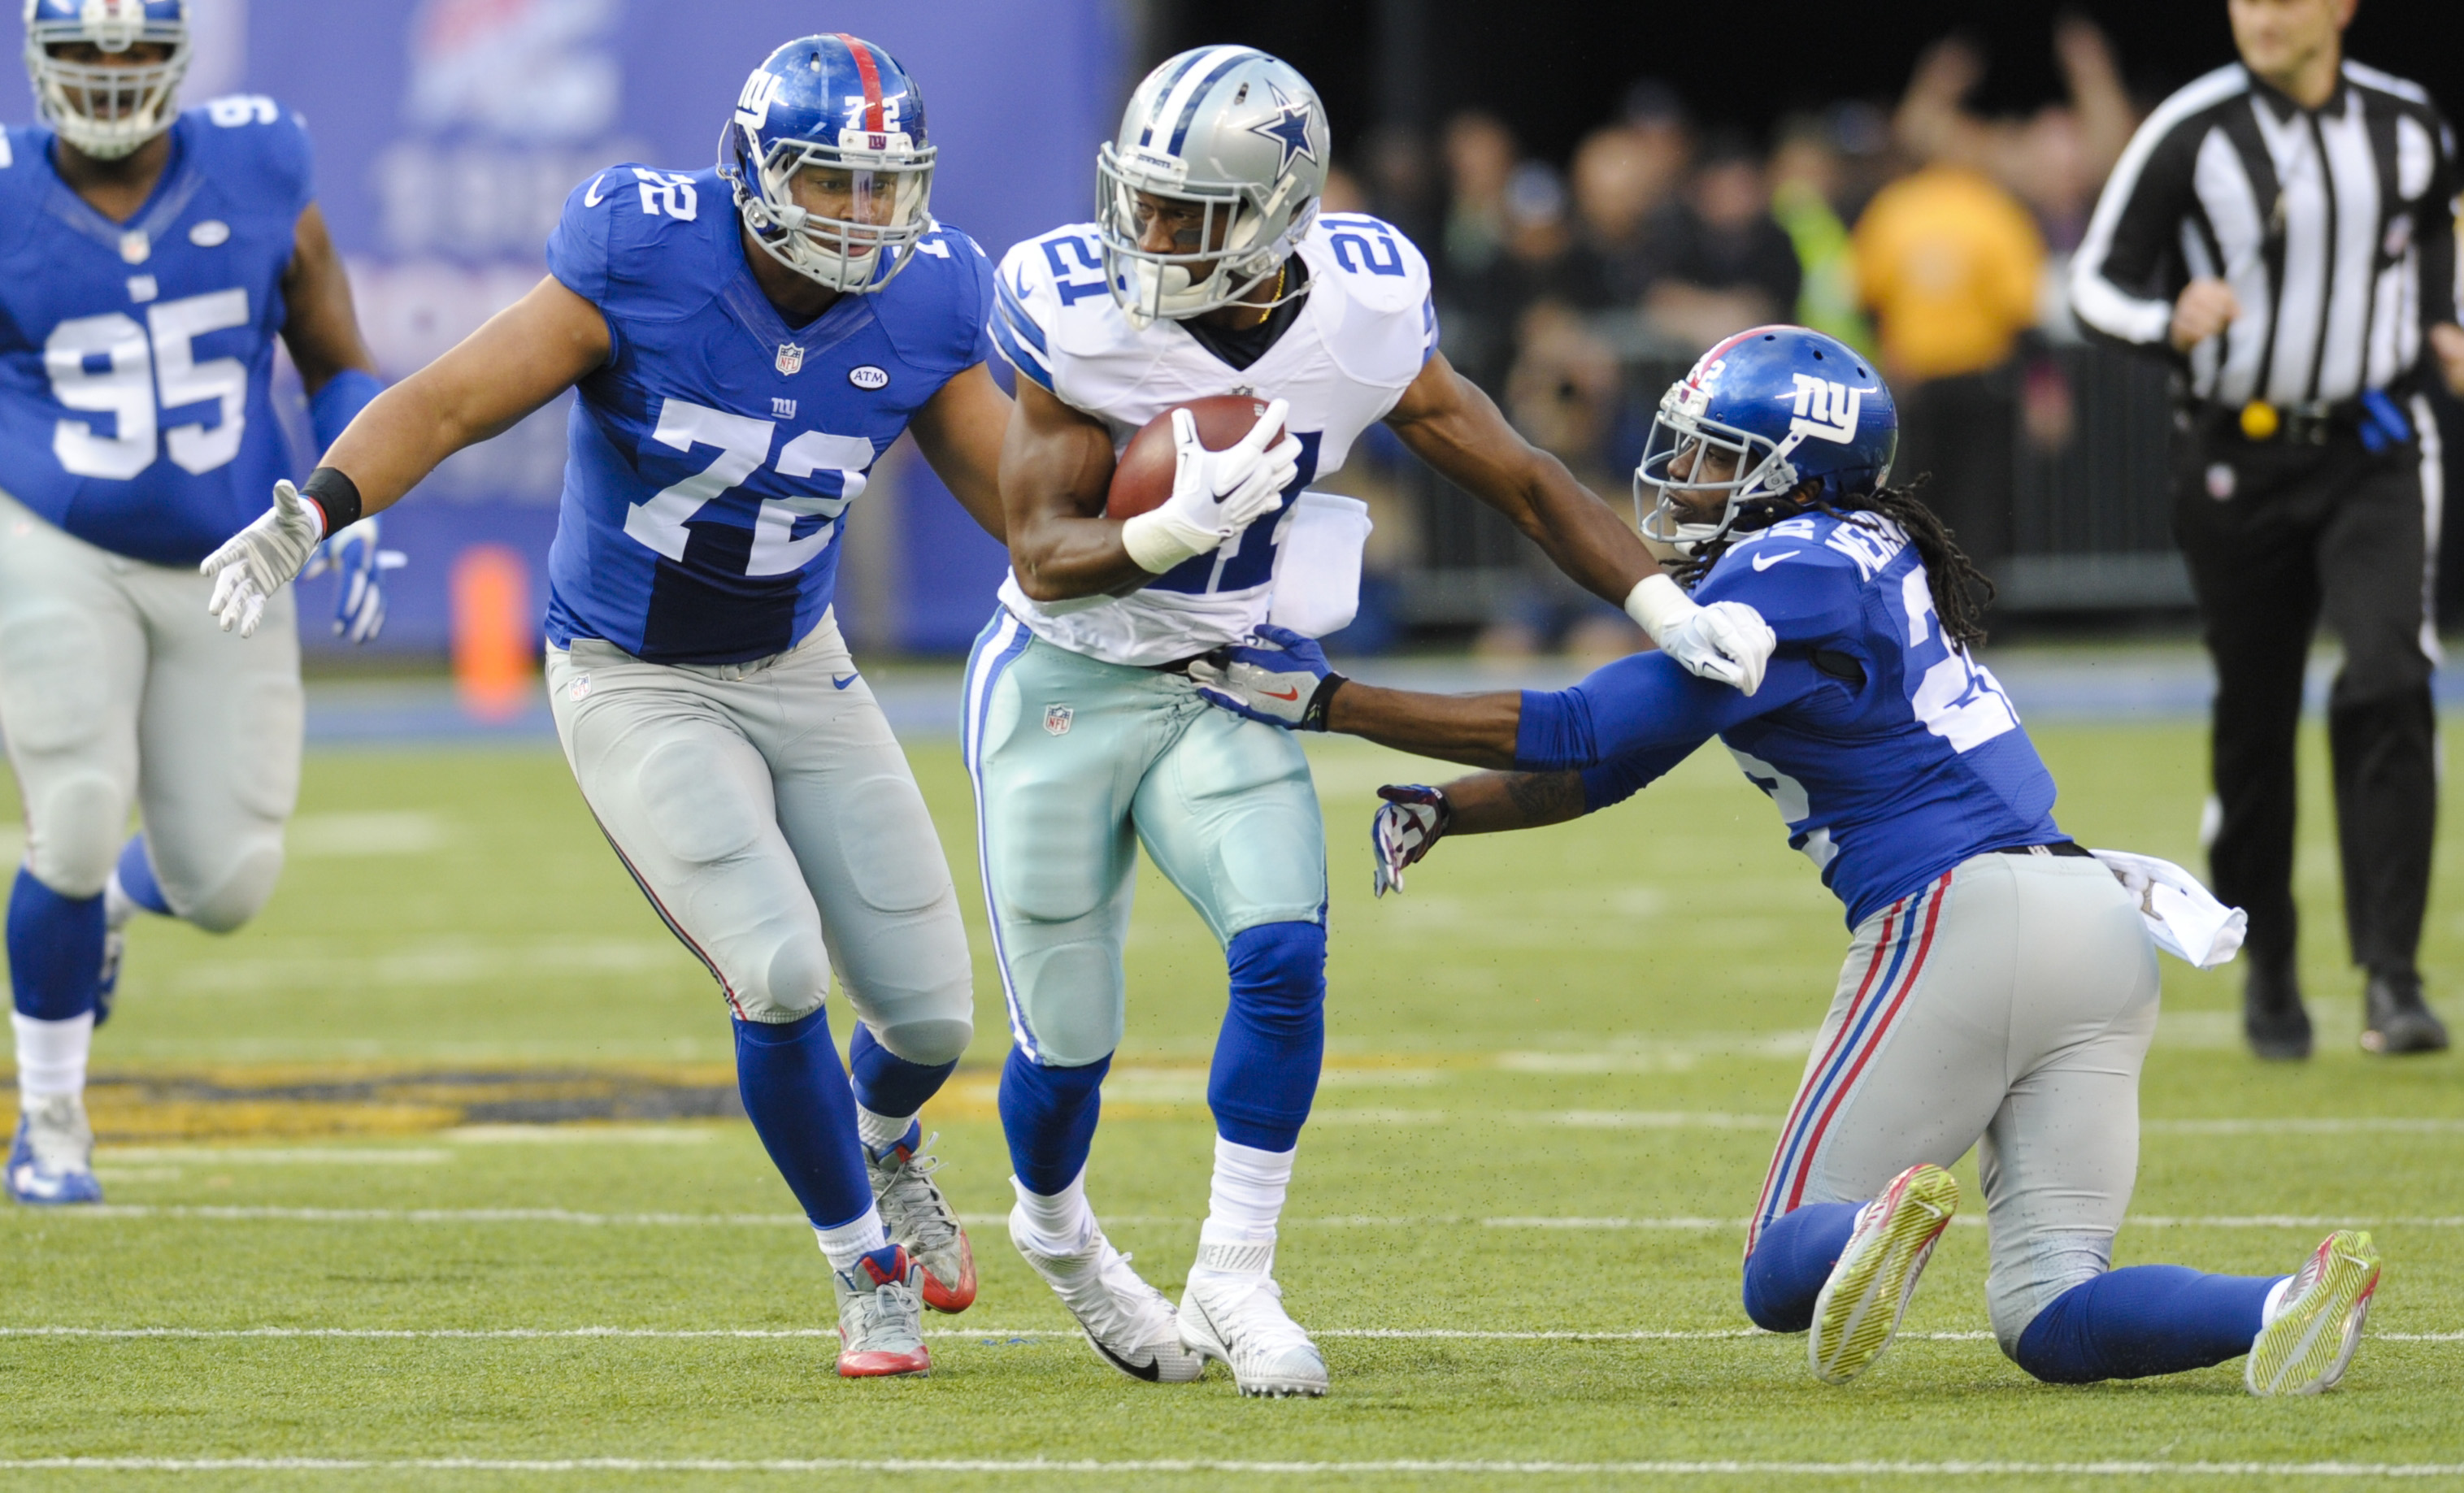 Dallas Cowboys' Joseph Randle (21) breacks a tackle by New York Giants' Brandon Meriweather (22) during the first half of an NFL football game, Sunday, Oct. 25, 2015, in East Rutherford, N.J. (AP Photo/Bill Kostroun)